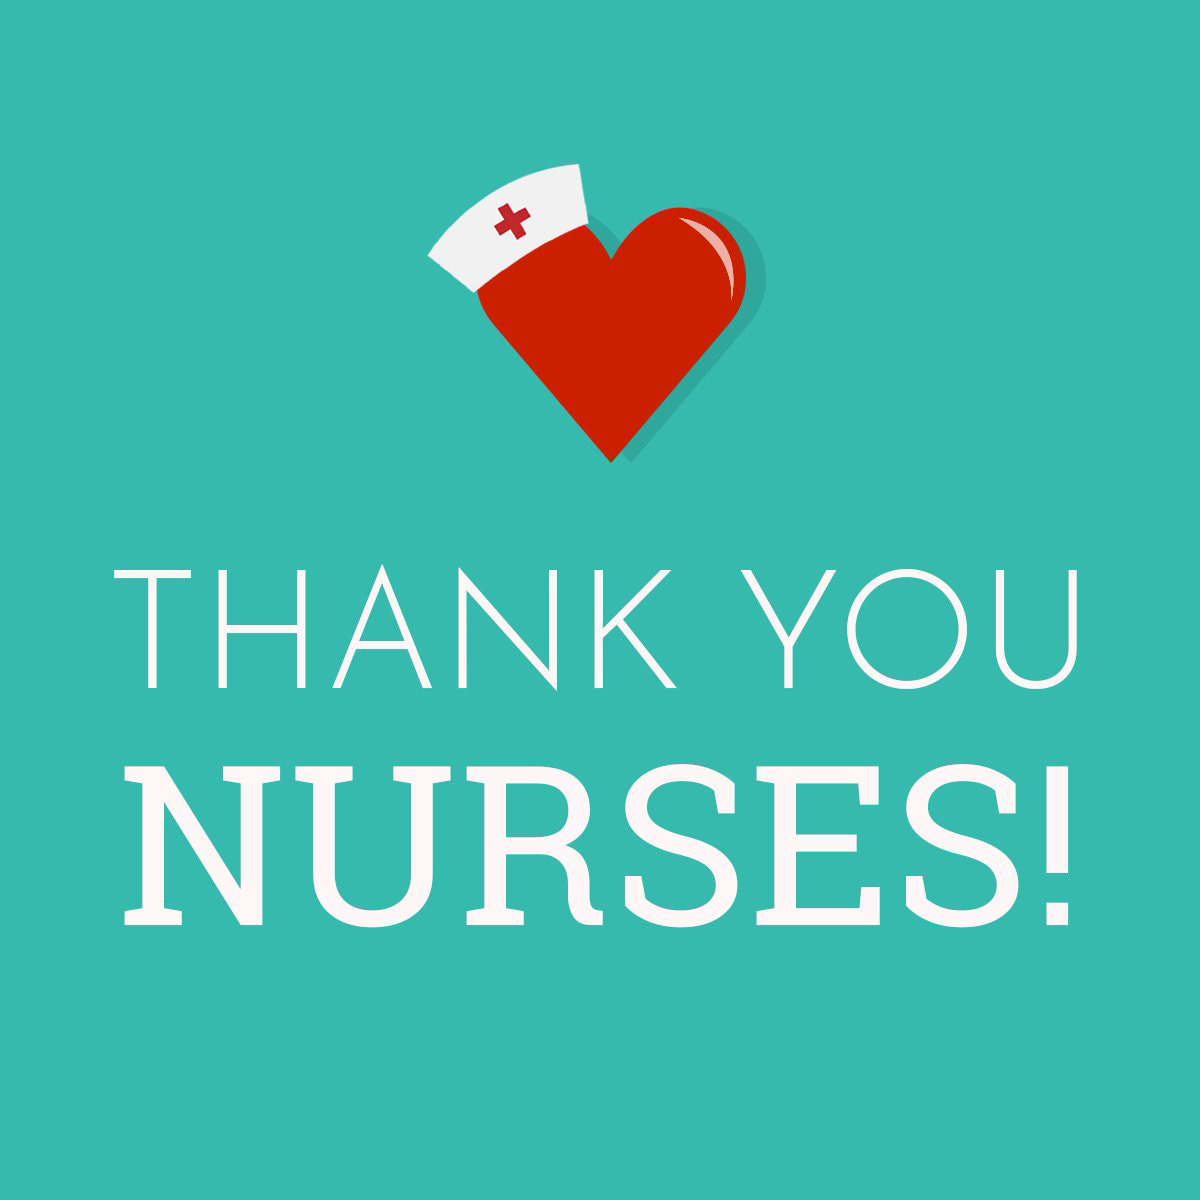 Thank You Nurses Graphic May 2020 Digital Signage